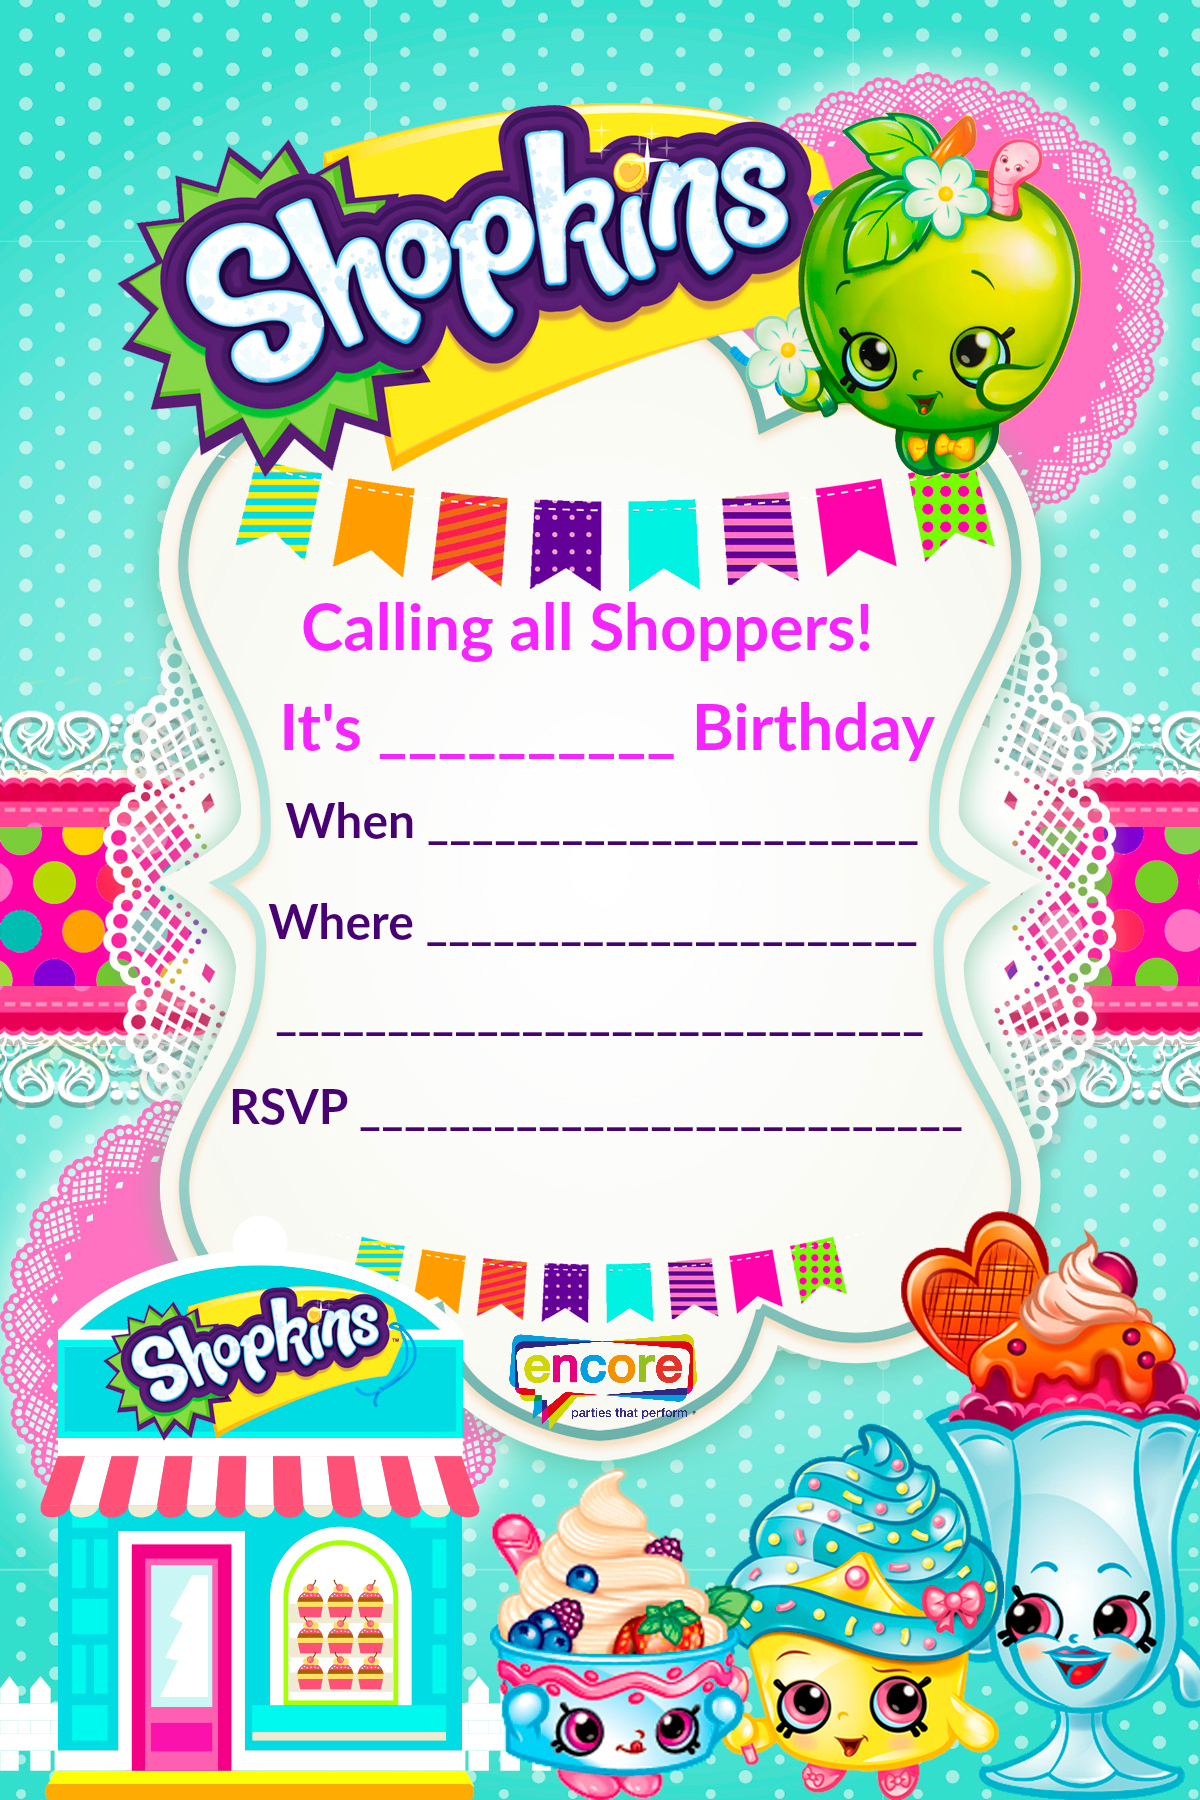 S Hopkins Birthday Template Pictures To Pin On Pinterest